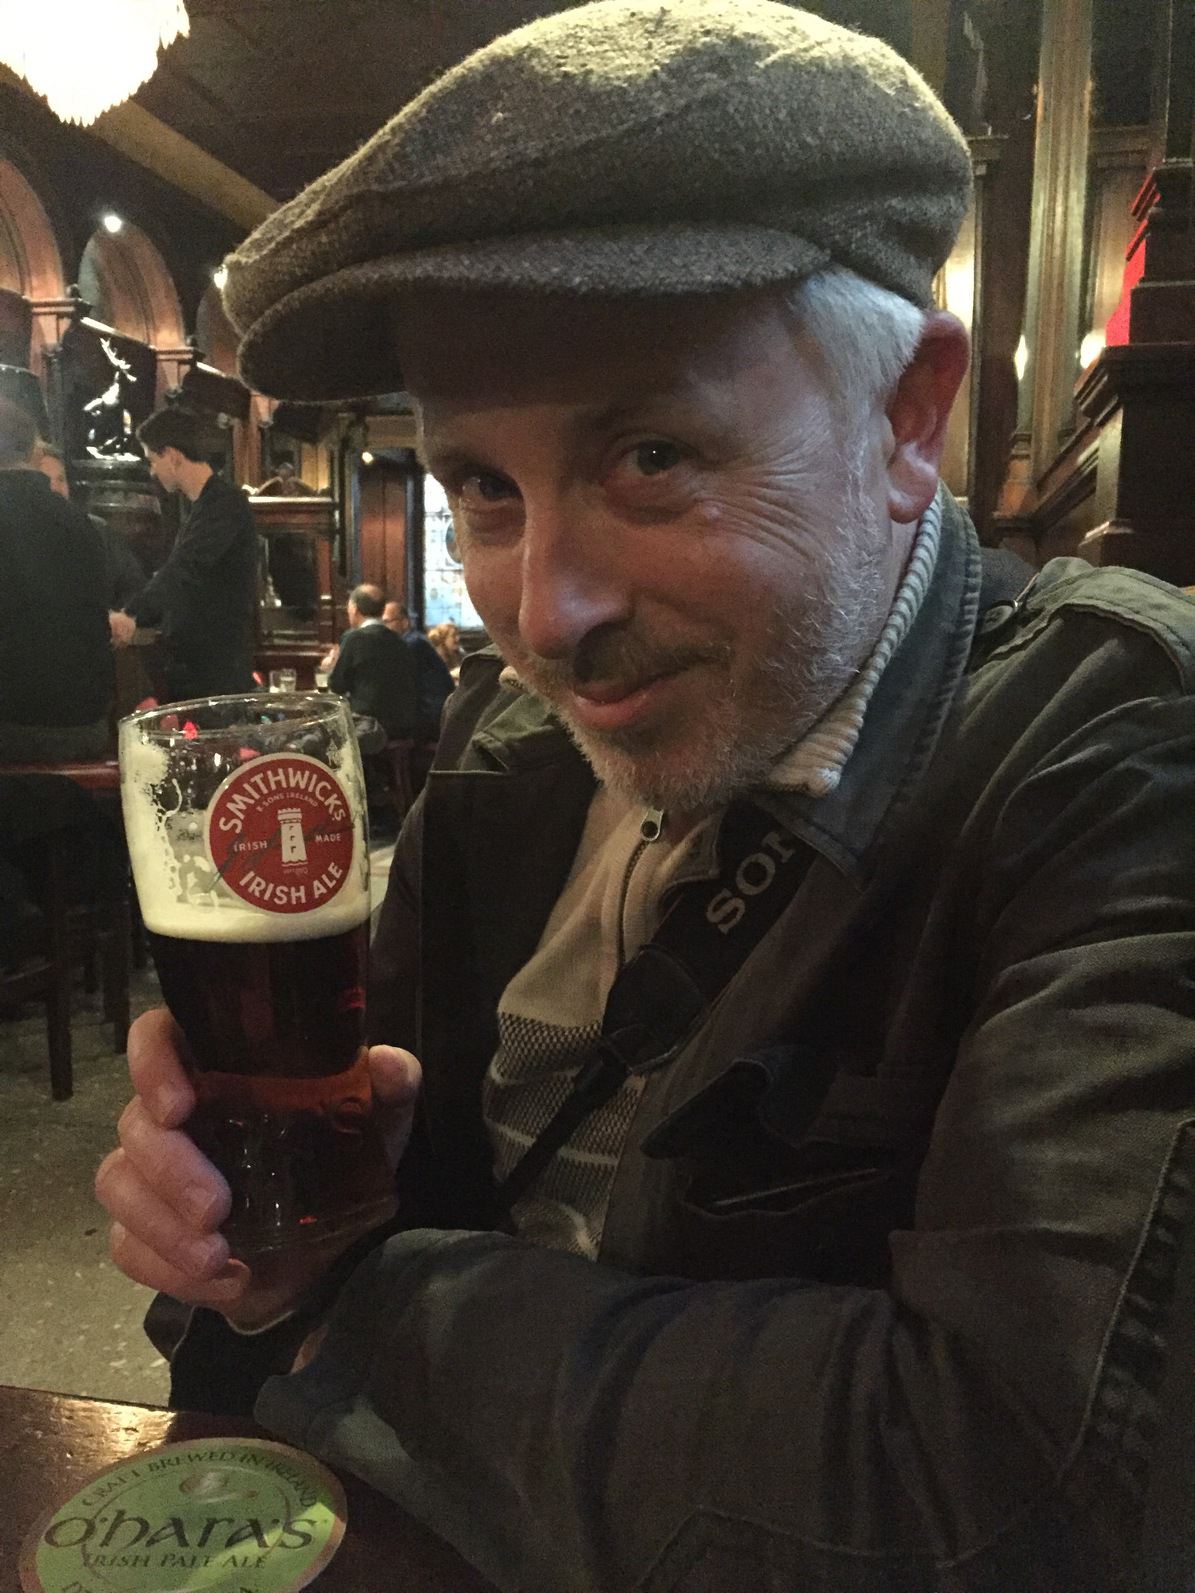 Enjoying a pint at the Stag's Head in Dublin, Ireland - May 2017